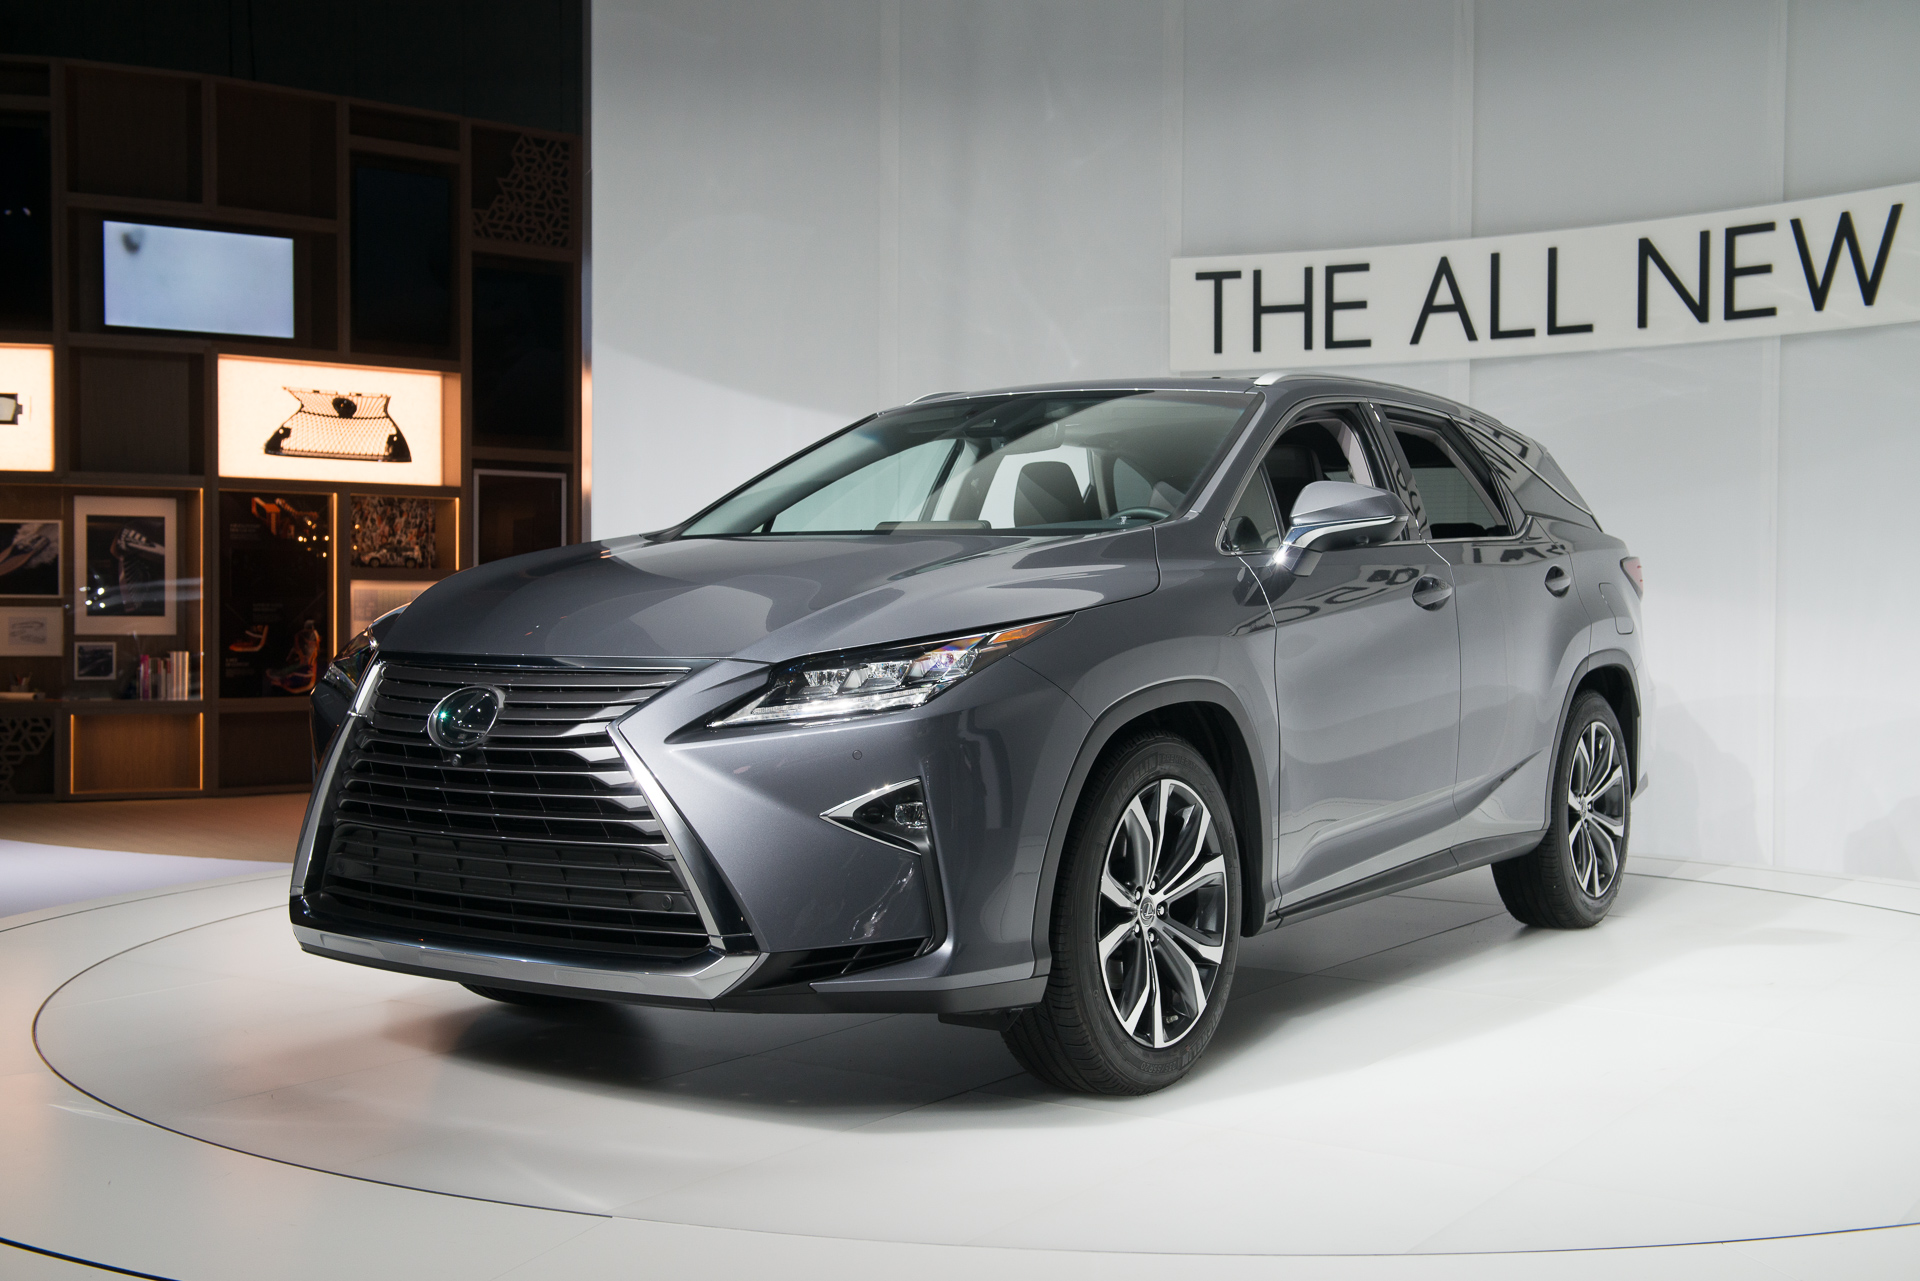 2018 Lexus RX 450hL hybrid three row SUV priced from $51 600